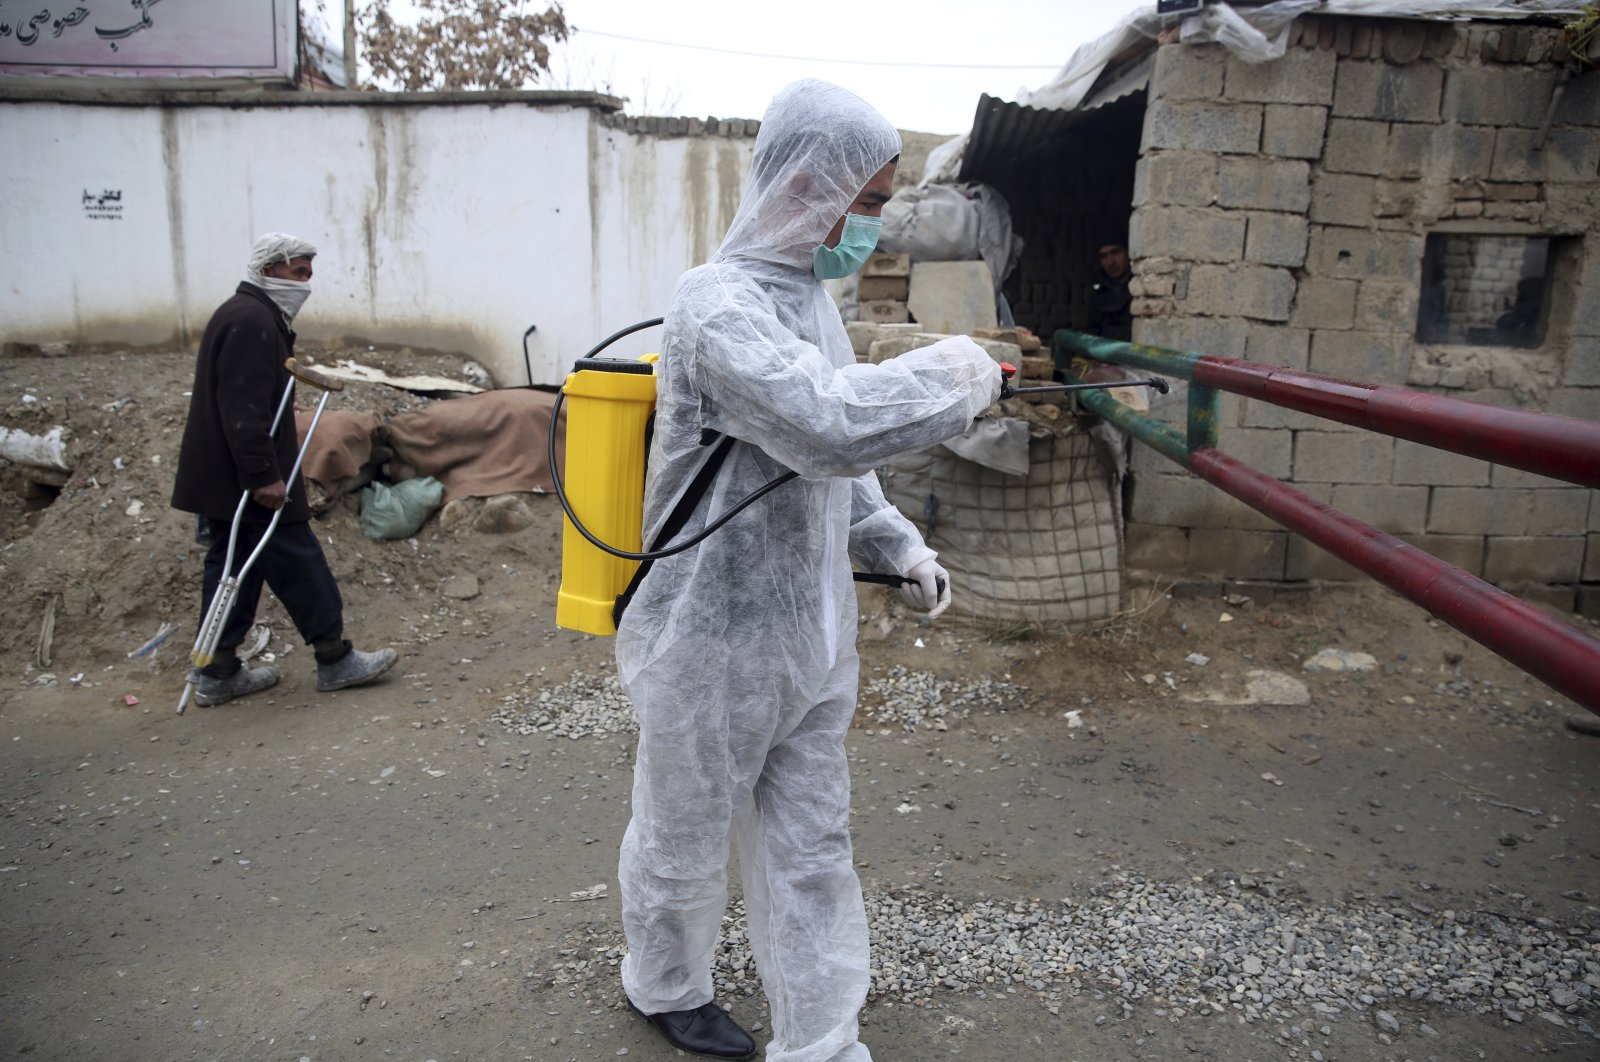 A volunteer in a protective suit sprays disinfectant outside a local police station to help curb the spread of coronavirus, Kabul, Monday, March 23, 2020. (AP Photo)